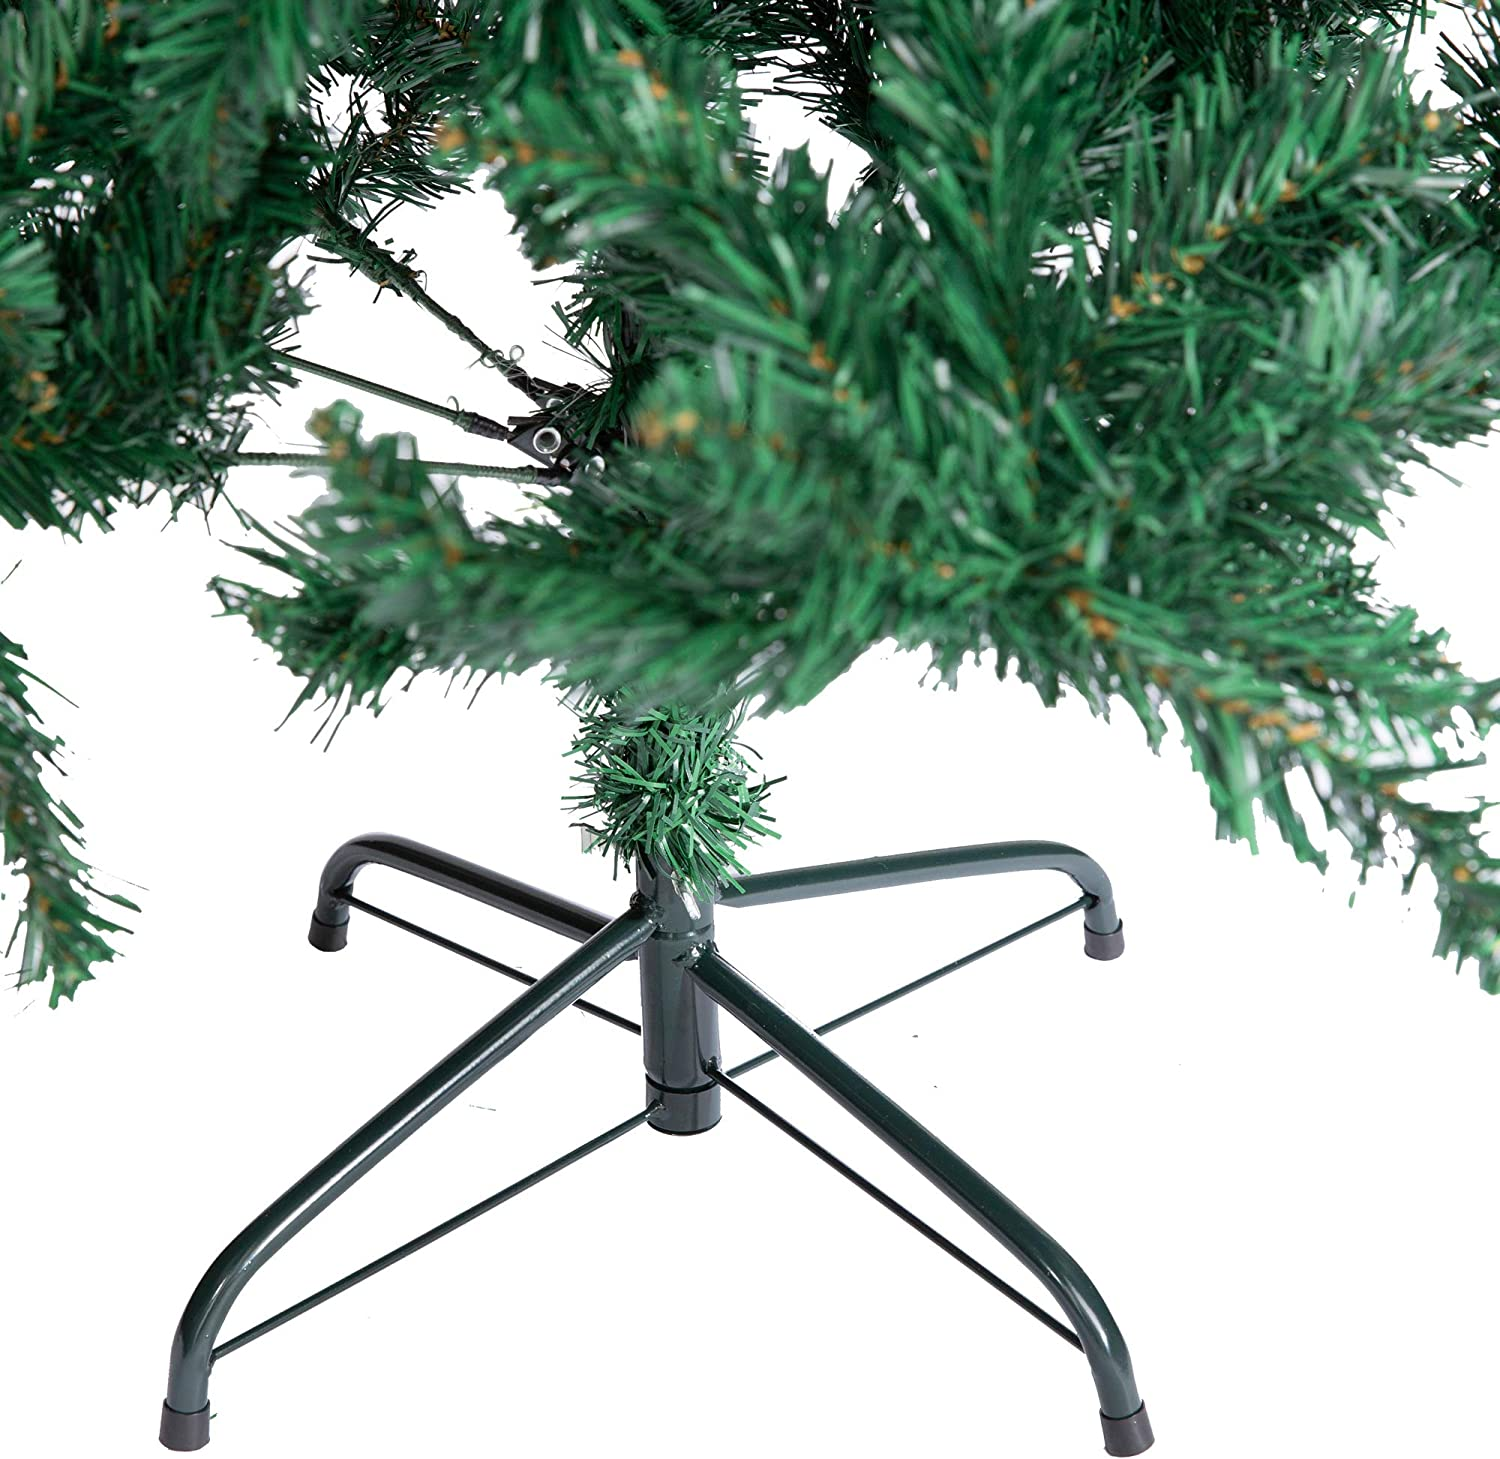 Olsen /& Smith Large 1346 Tips Festive Artificial Pine Indoor Xmas Christmas Tree with Waterproof Storage Bag Tree Only